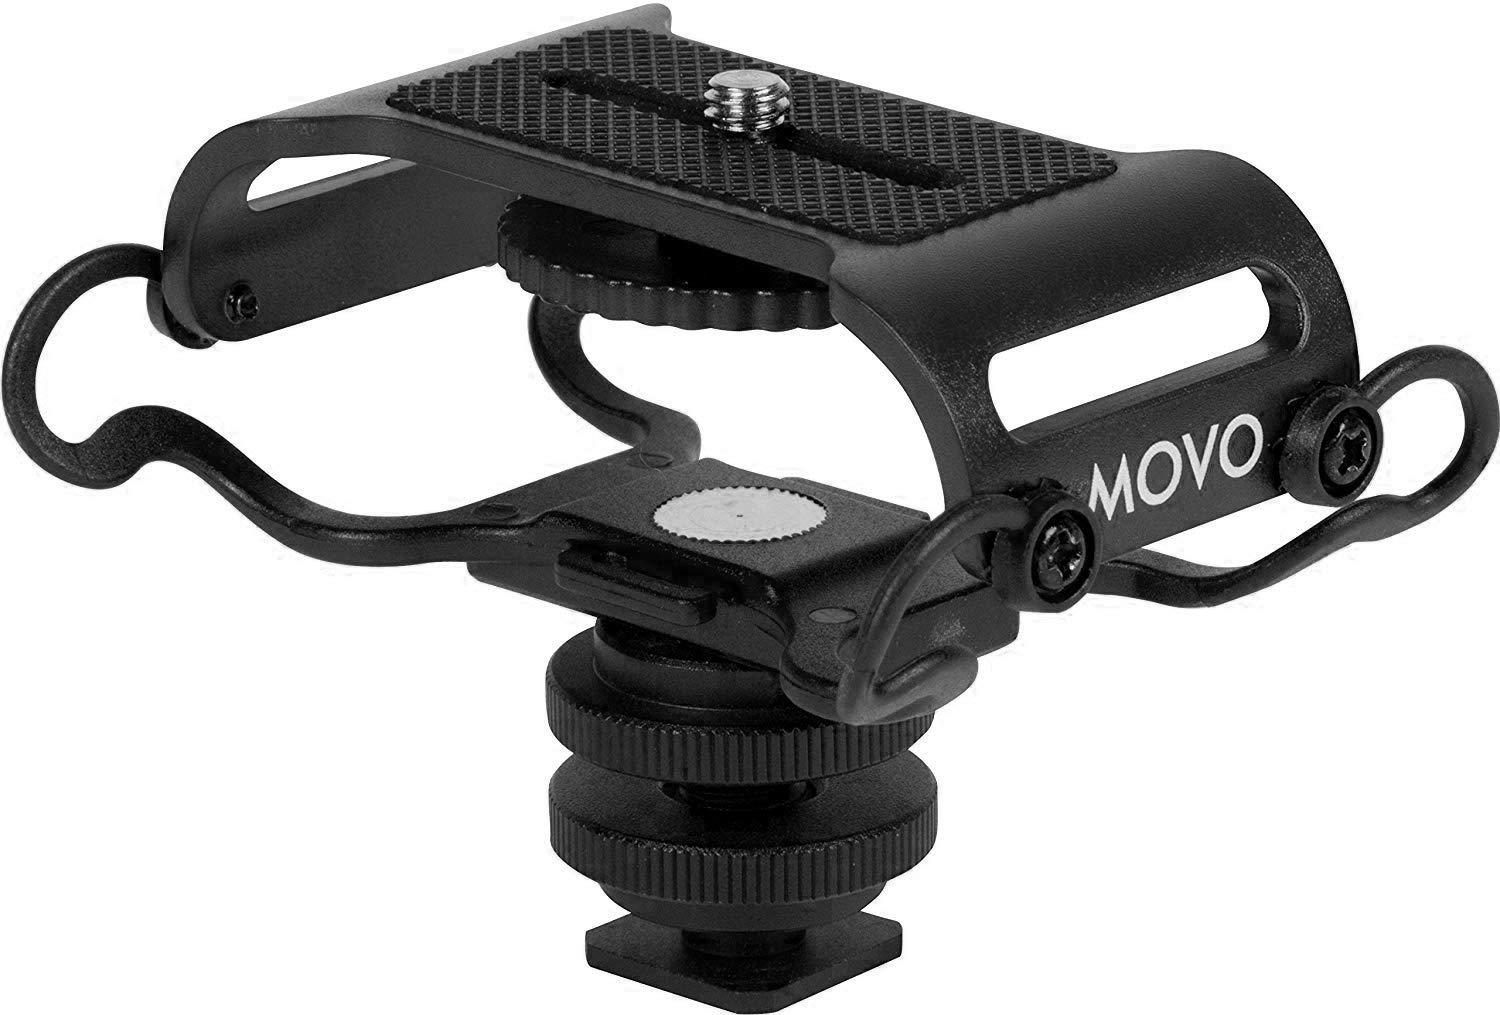 """Movo SMM5-B Universal Microphone and Portable Recorder Shock Mount - Fits the Zoom H4n, H5, H6, Tascam DR-40, DR-05, DR-07 with 1/4"""" Mounting Screw (Black/Black)"""